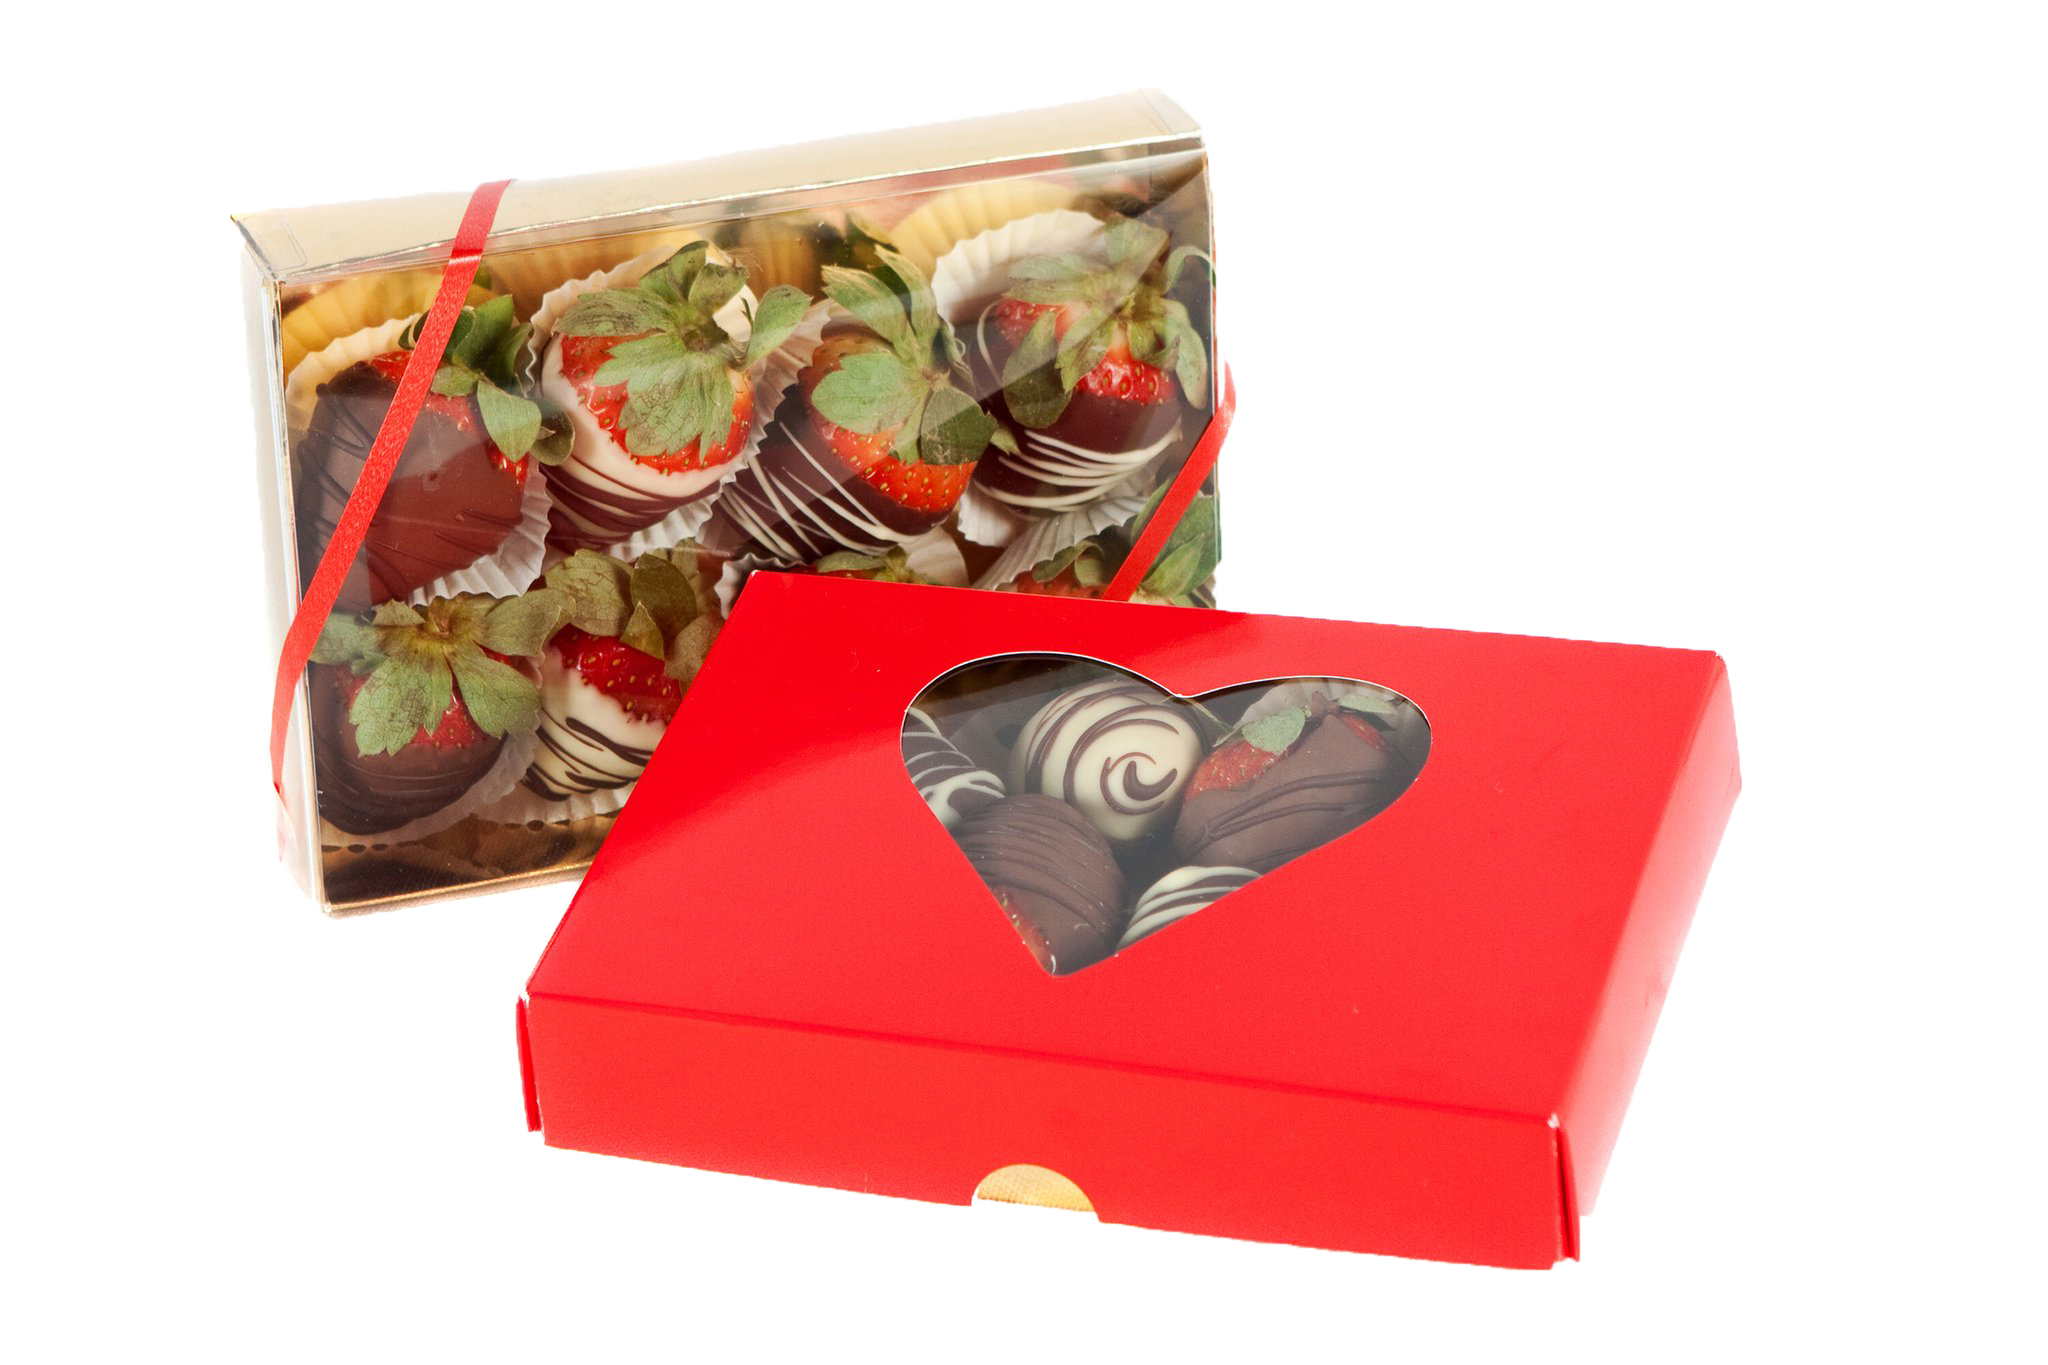 Valantines strawberry gift boxes by fruity bouquets.jpg